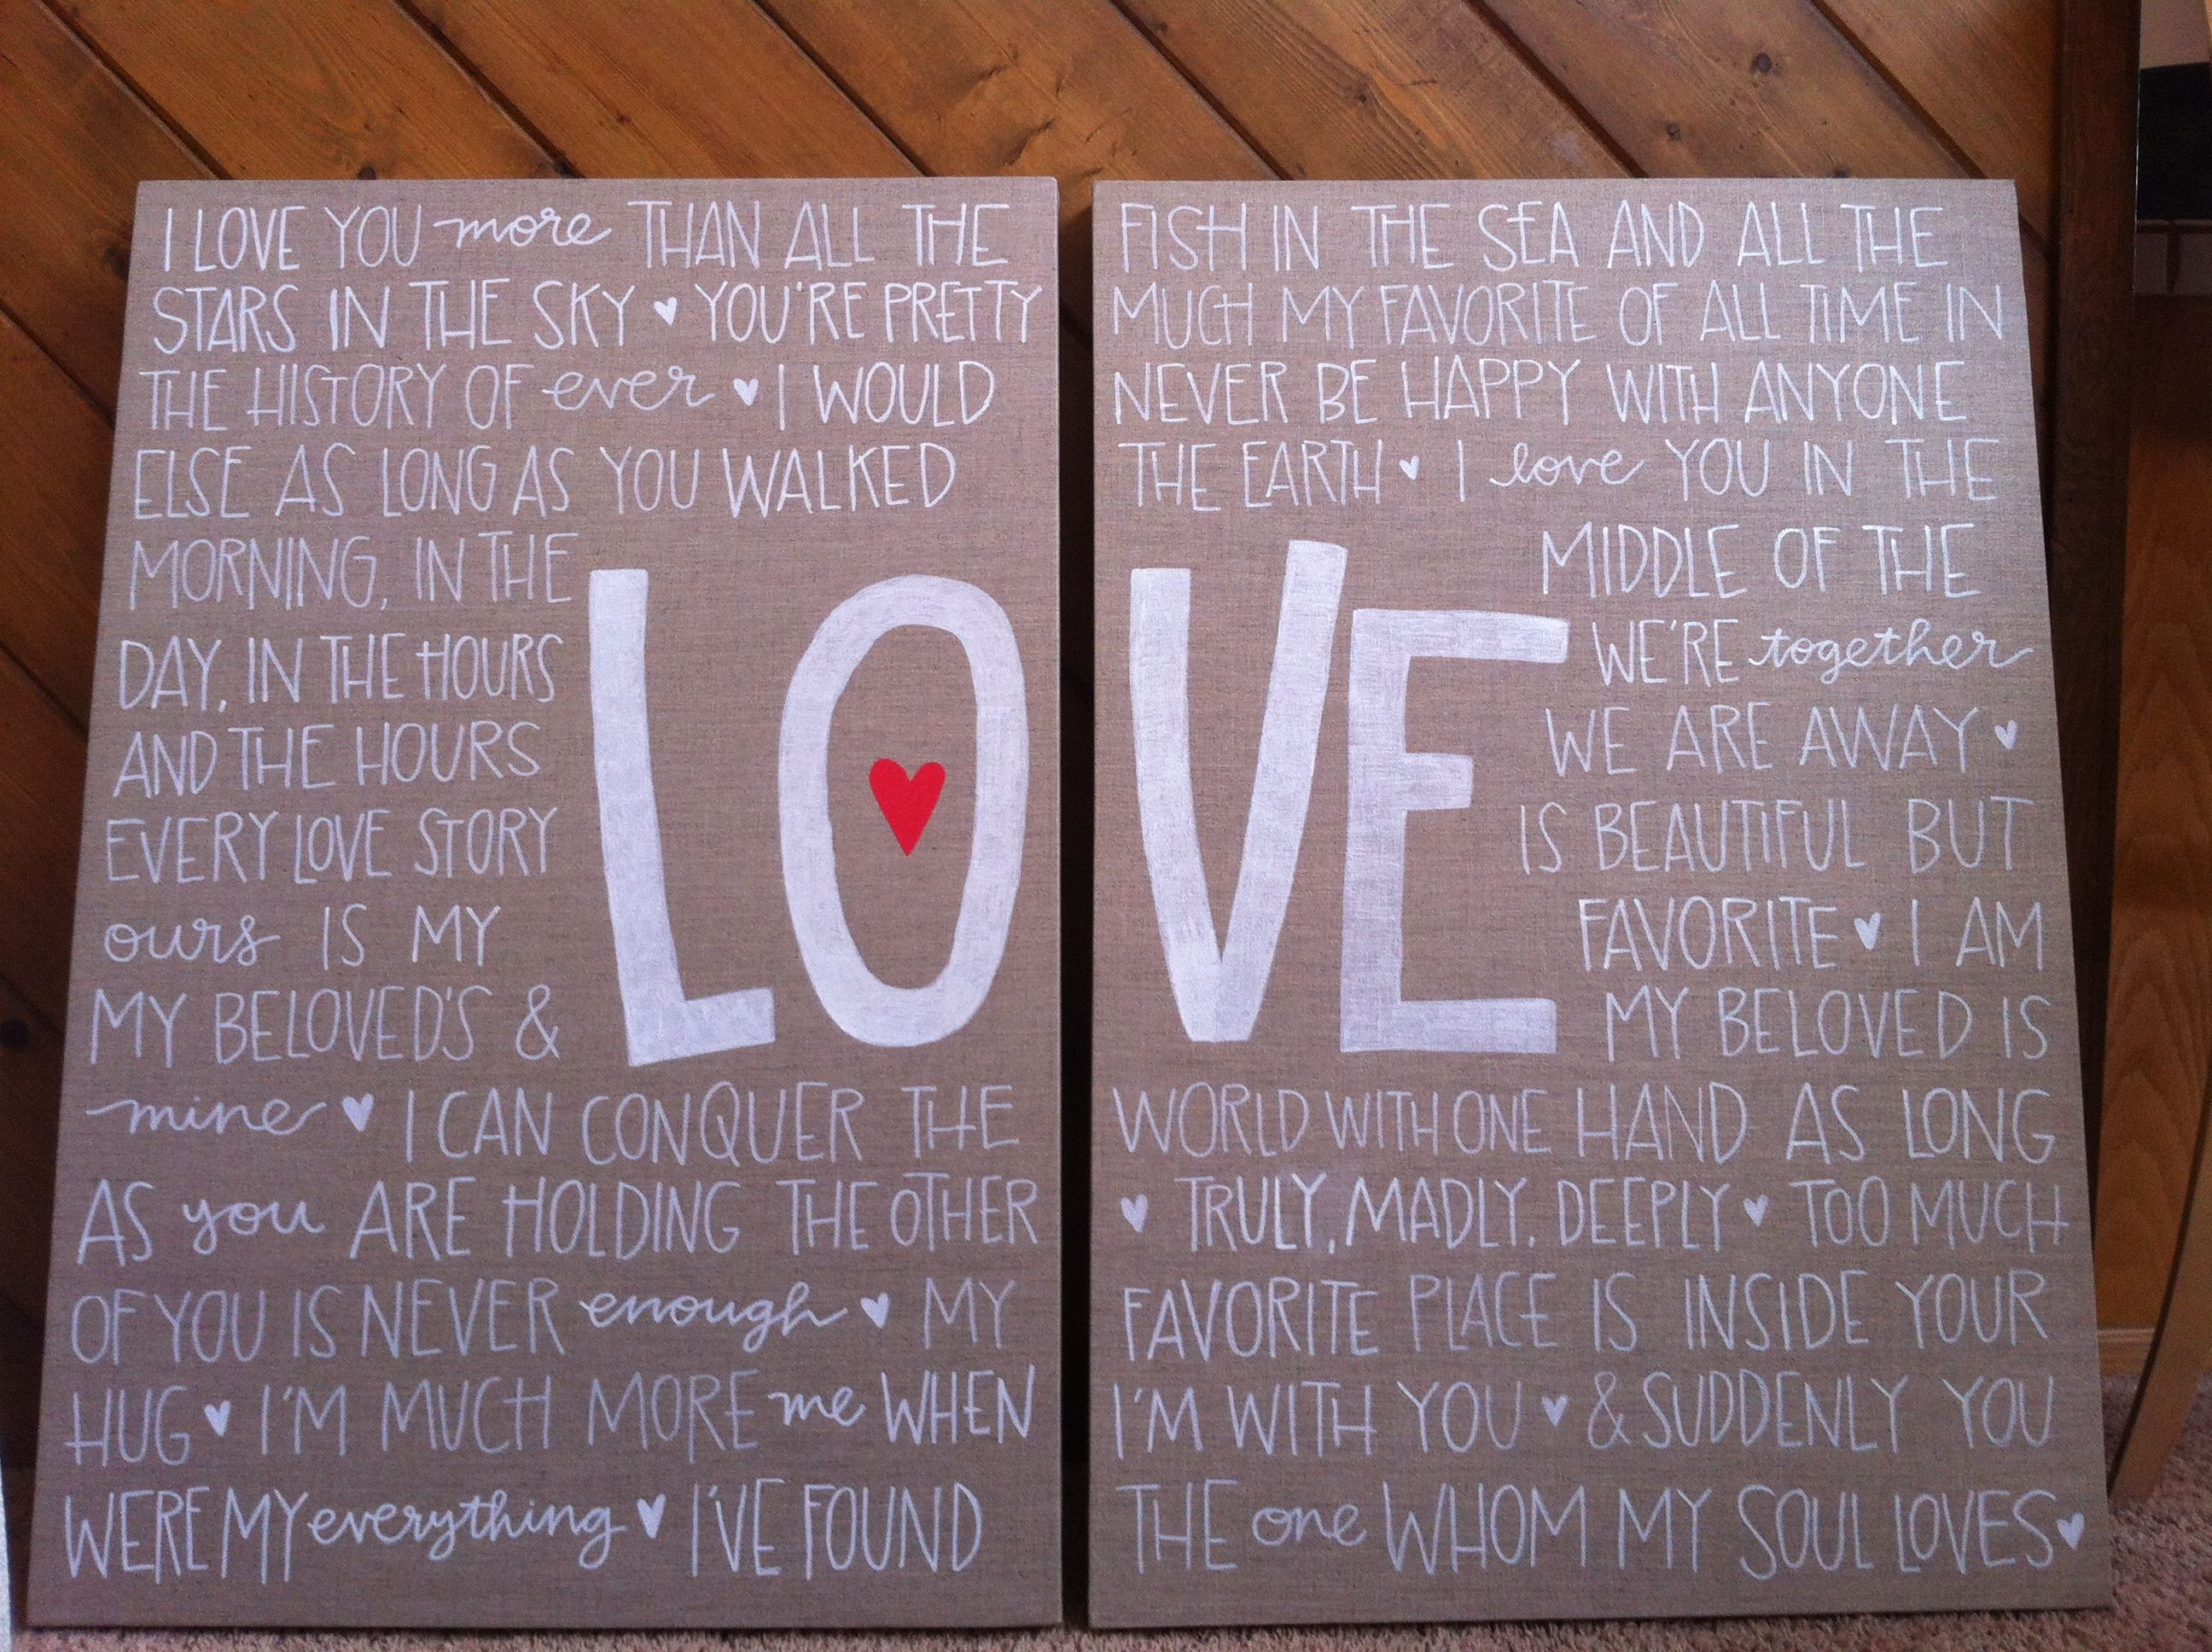 Love Quotes On Canvas Love Quotes On Canvas  Google Search  Quotes  Pinterest  Wood